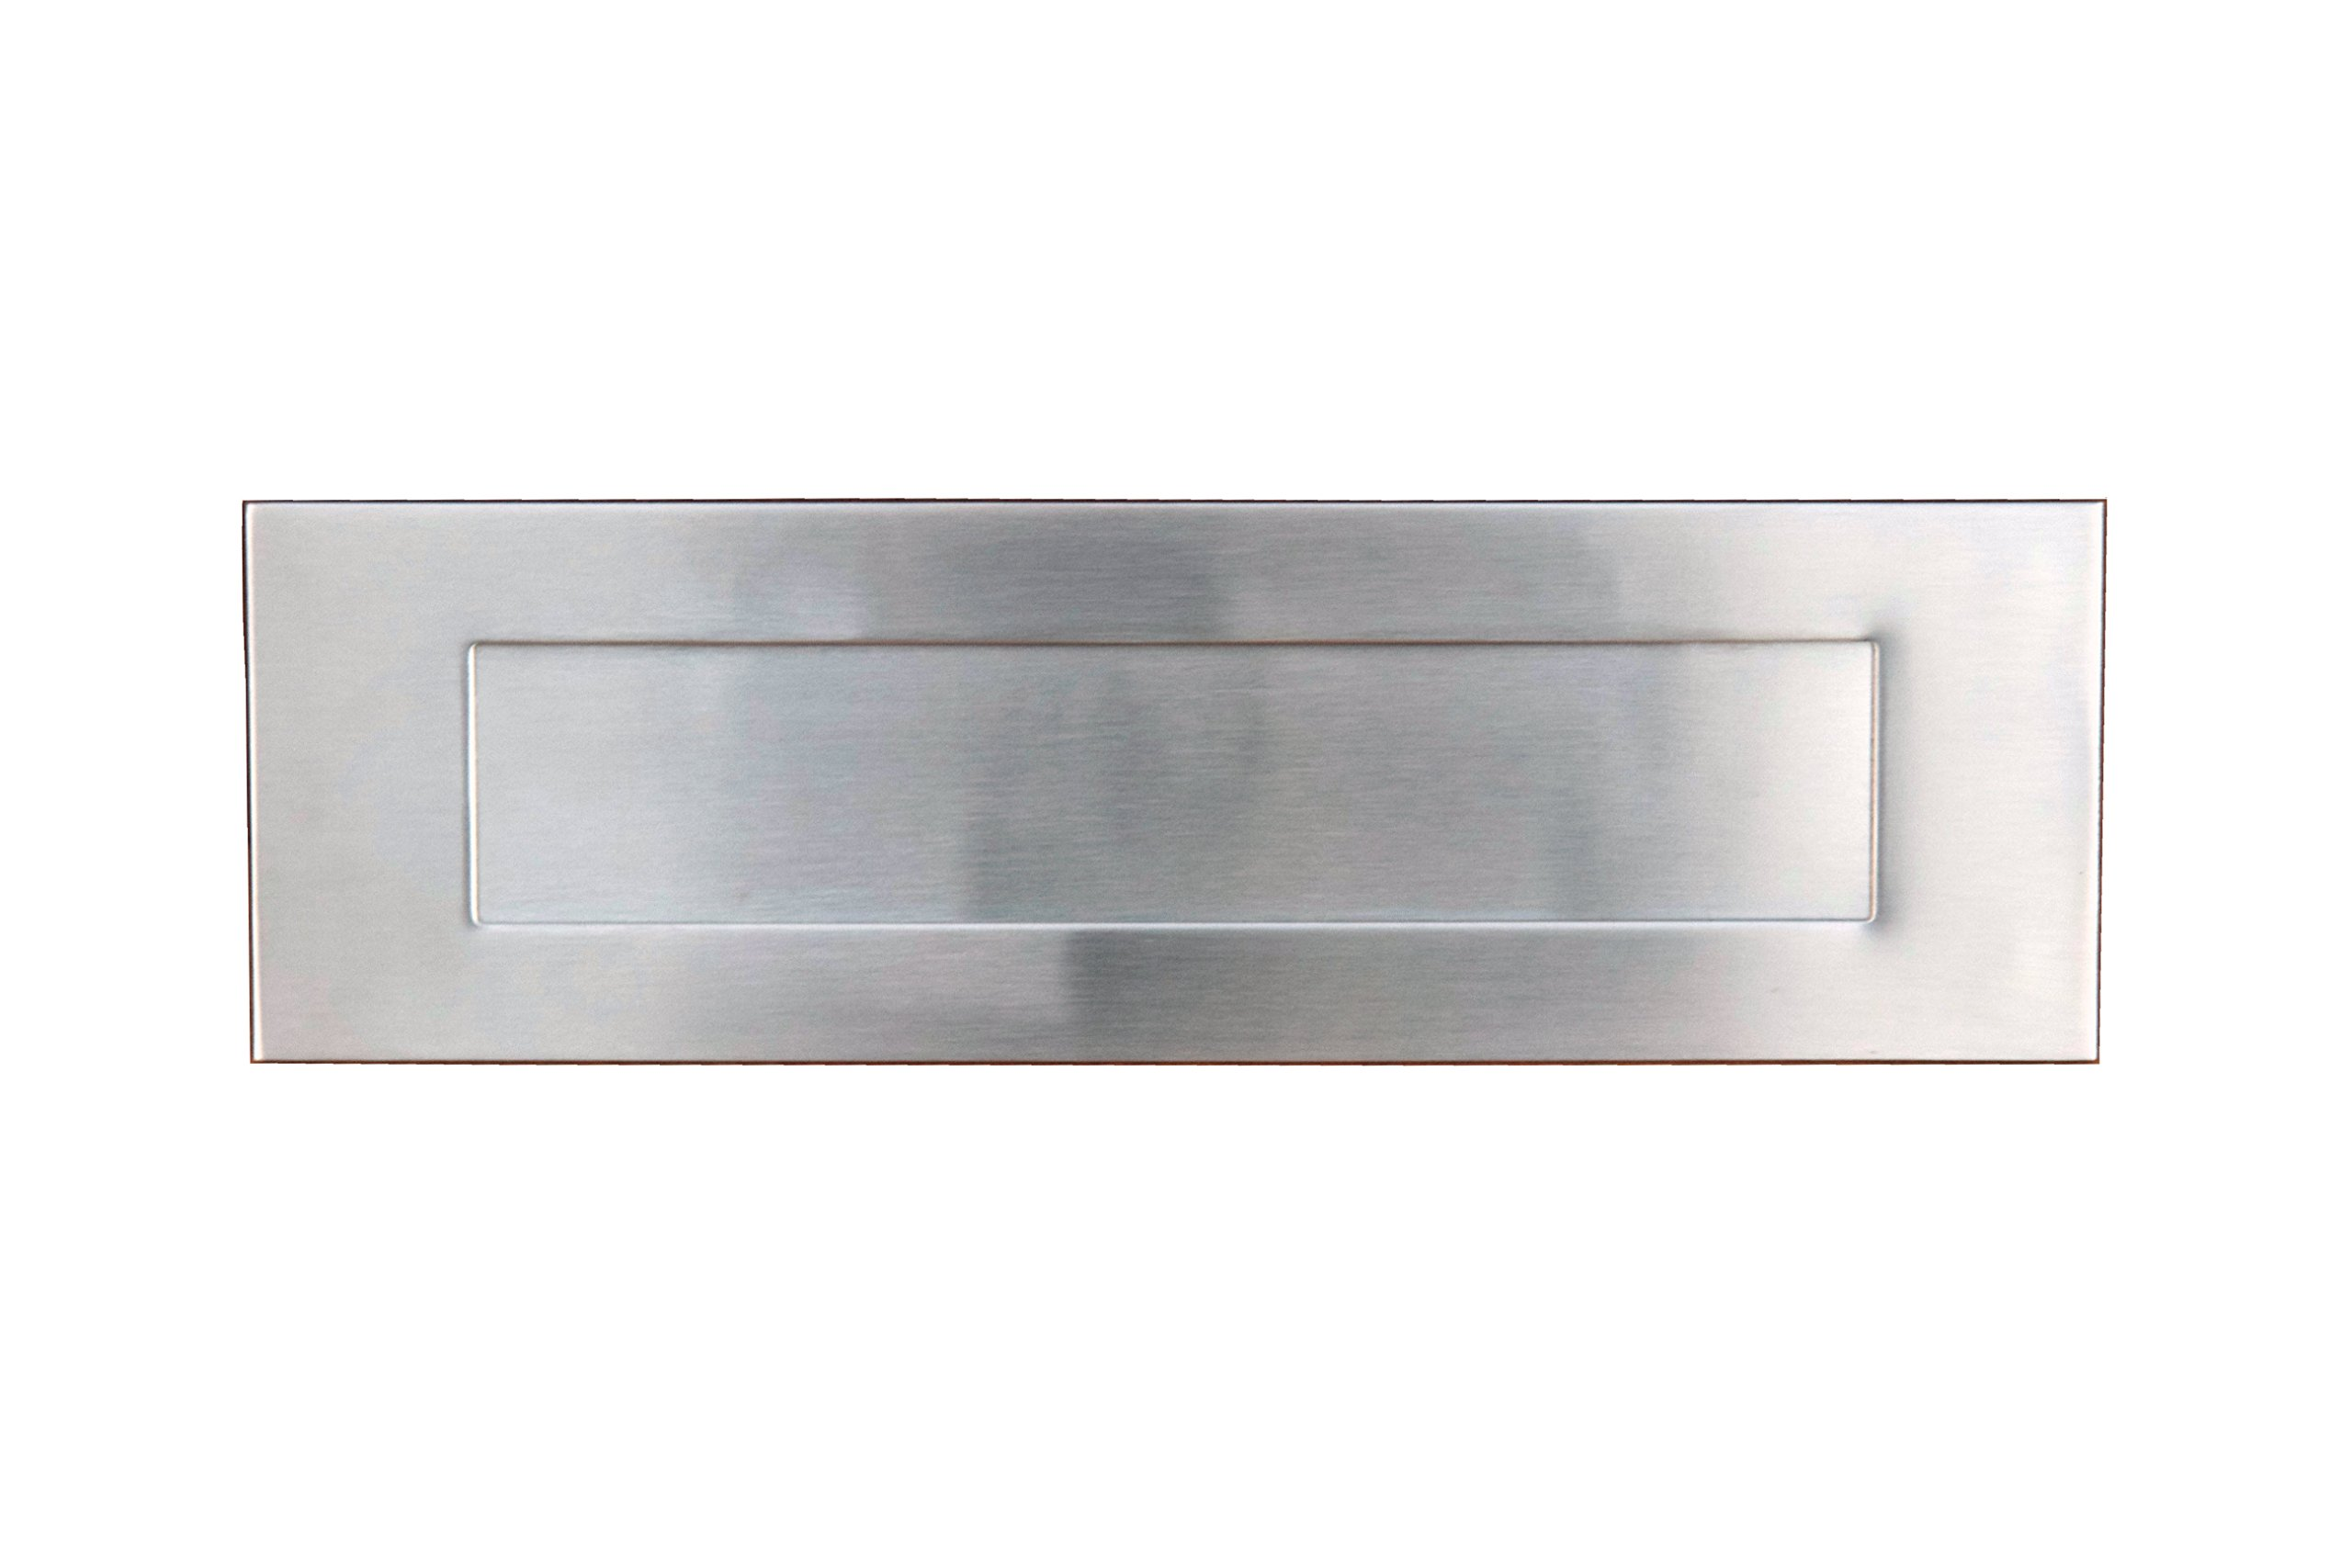 Stainless Steel Wall Mount Front Side Door Mail Slot, Letter Box Plate Compatible With Any Door Type, 13 in. W x 4 in. H